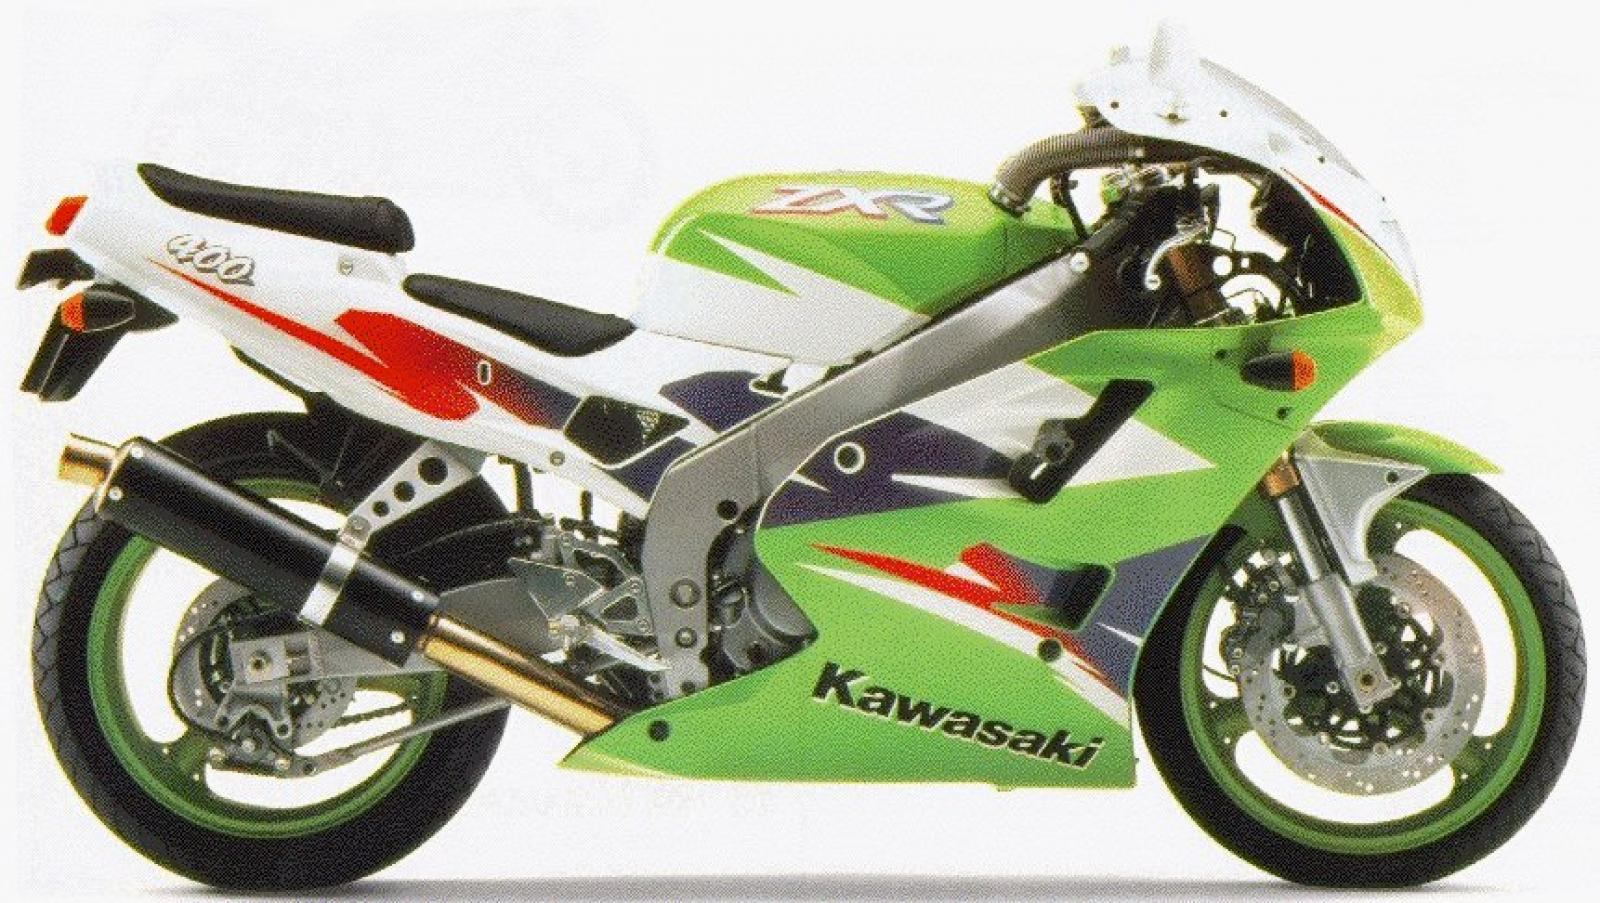 Kawasaki Ninja 300 Abs 2014 2017 2018 Cars Reviews